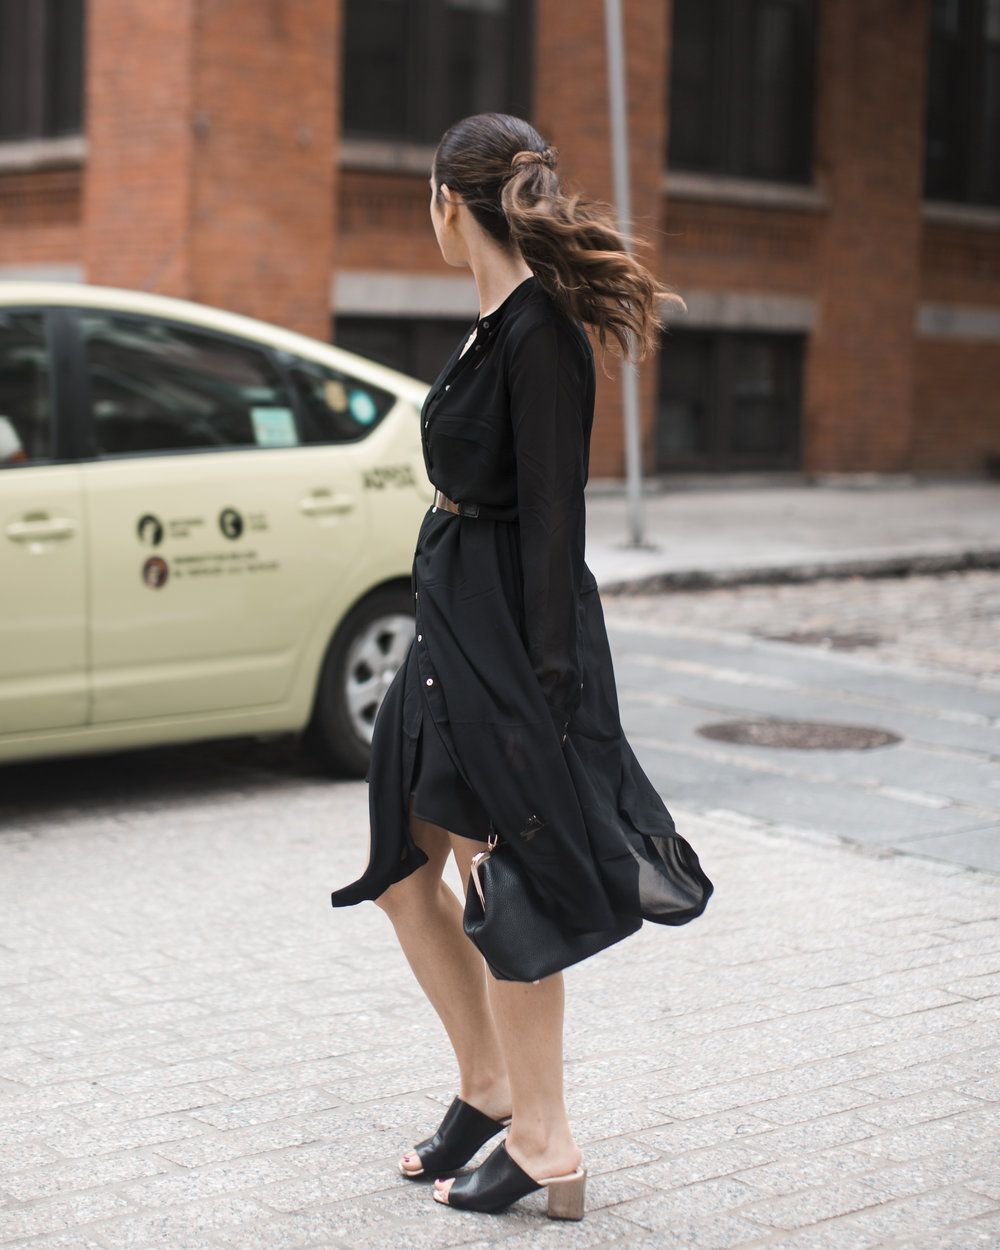 Gold Ribbon Pendant Leibish and Co. Diamonds Louboutins & Love Fashion Blog Esther Santer NYC Street Style Blogger Monochrome Mules Necklace Braid Hair Girl Women Shirt Dress All Black Trendy Outfit Jewelry Red Lipstick OOTD Inspo Wear Bag Shop Inspo.jpg